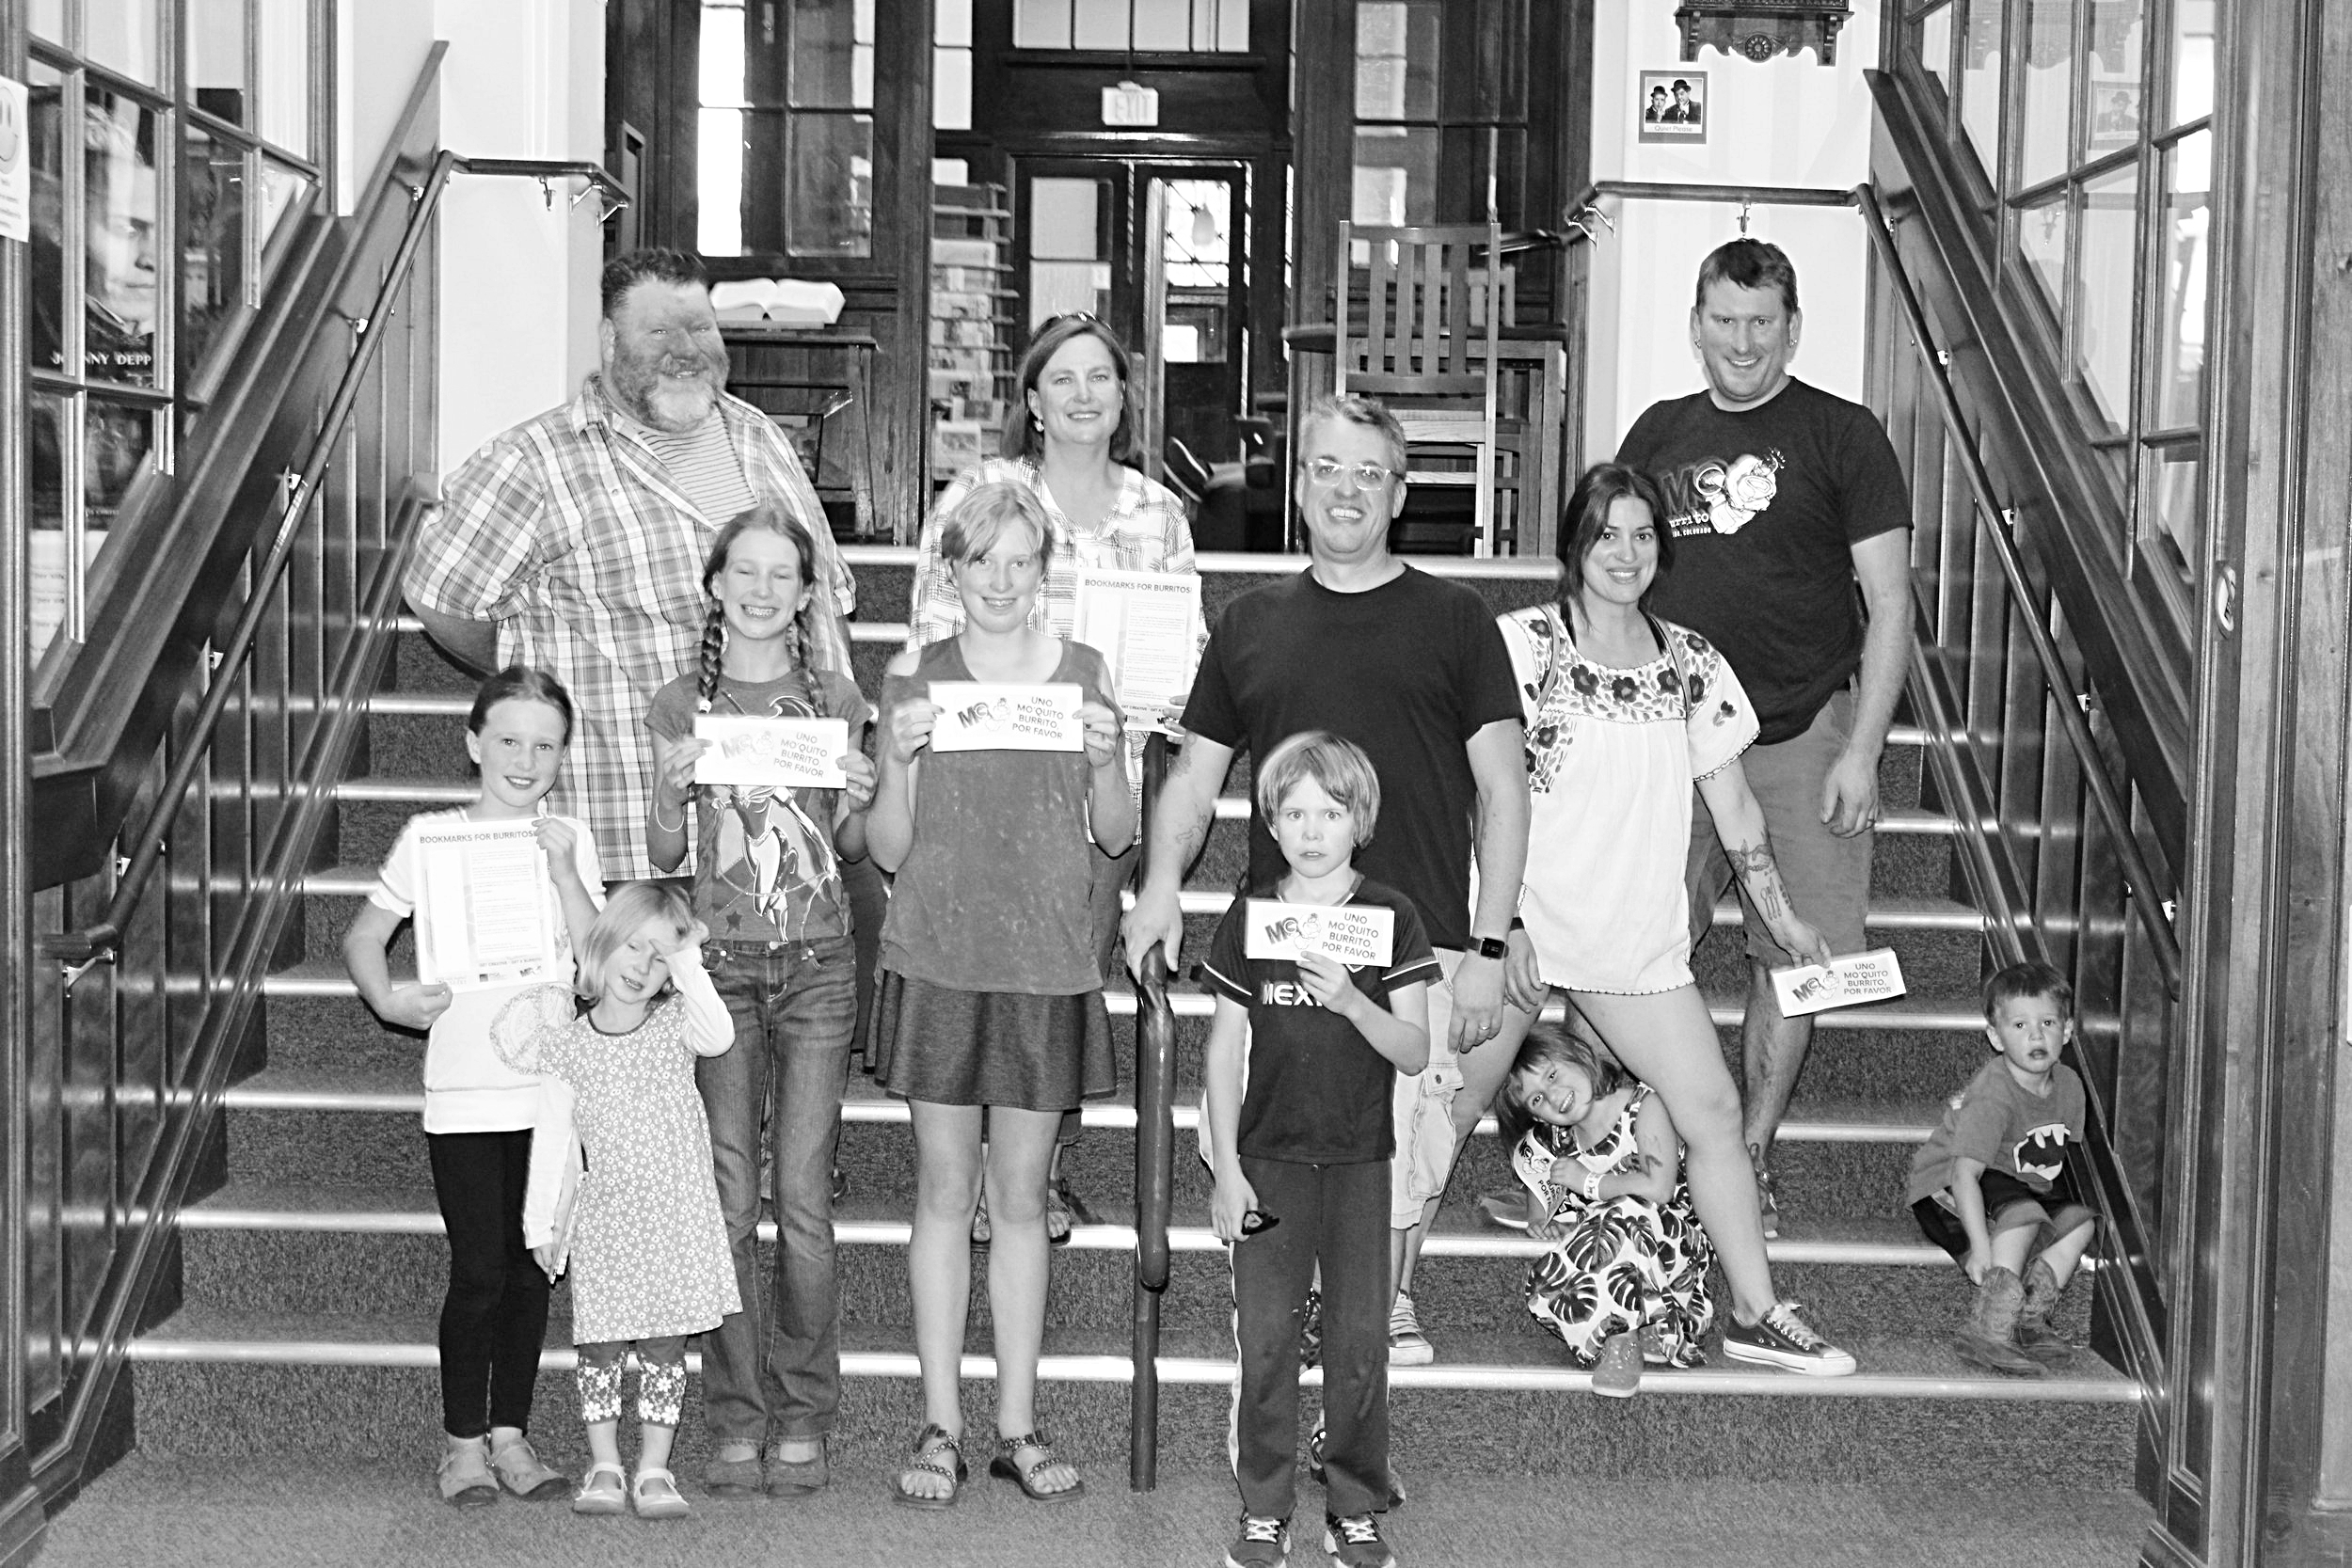 Participants and supporters gather at Salida Regional Library to kick off the PfCA Bookmarks for Burritos Program. From left front are Tatum Miller, Dinah Miller, Maya Miller, Harper Hartman, Jesse Hawley, Mabel Gartzman and Ozzie Gartzman. Back: Jimmy Sellars, Susan Matthews, Mark Monroe, Sarah Gartzman, and Rob Gartzman. Photo by Sam Klomhaus from  The Mountain Mail .